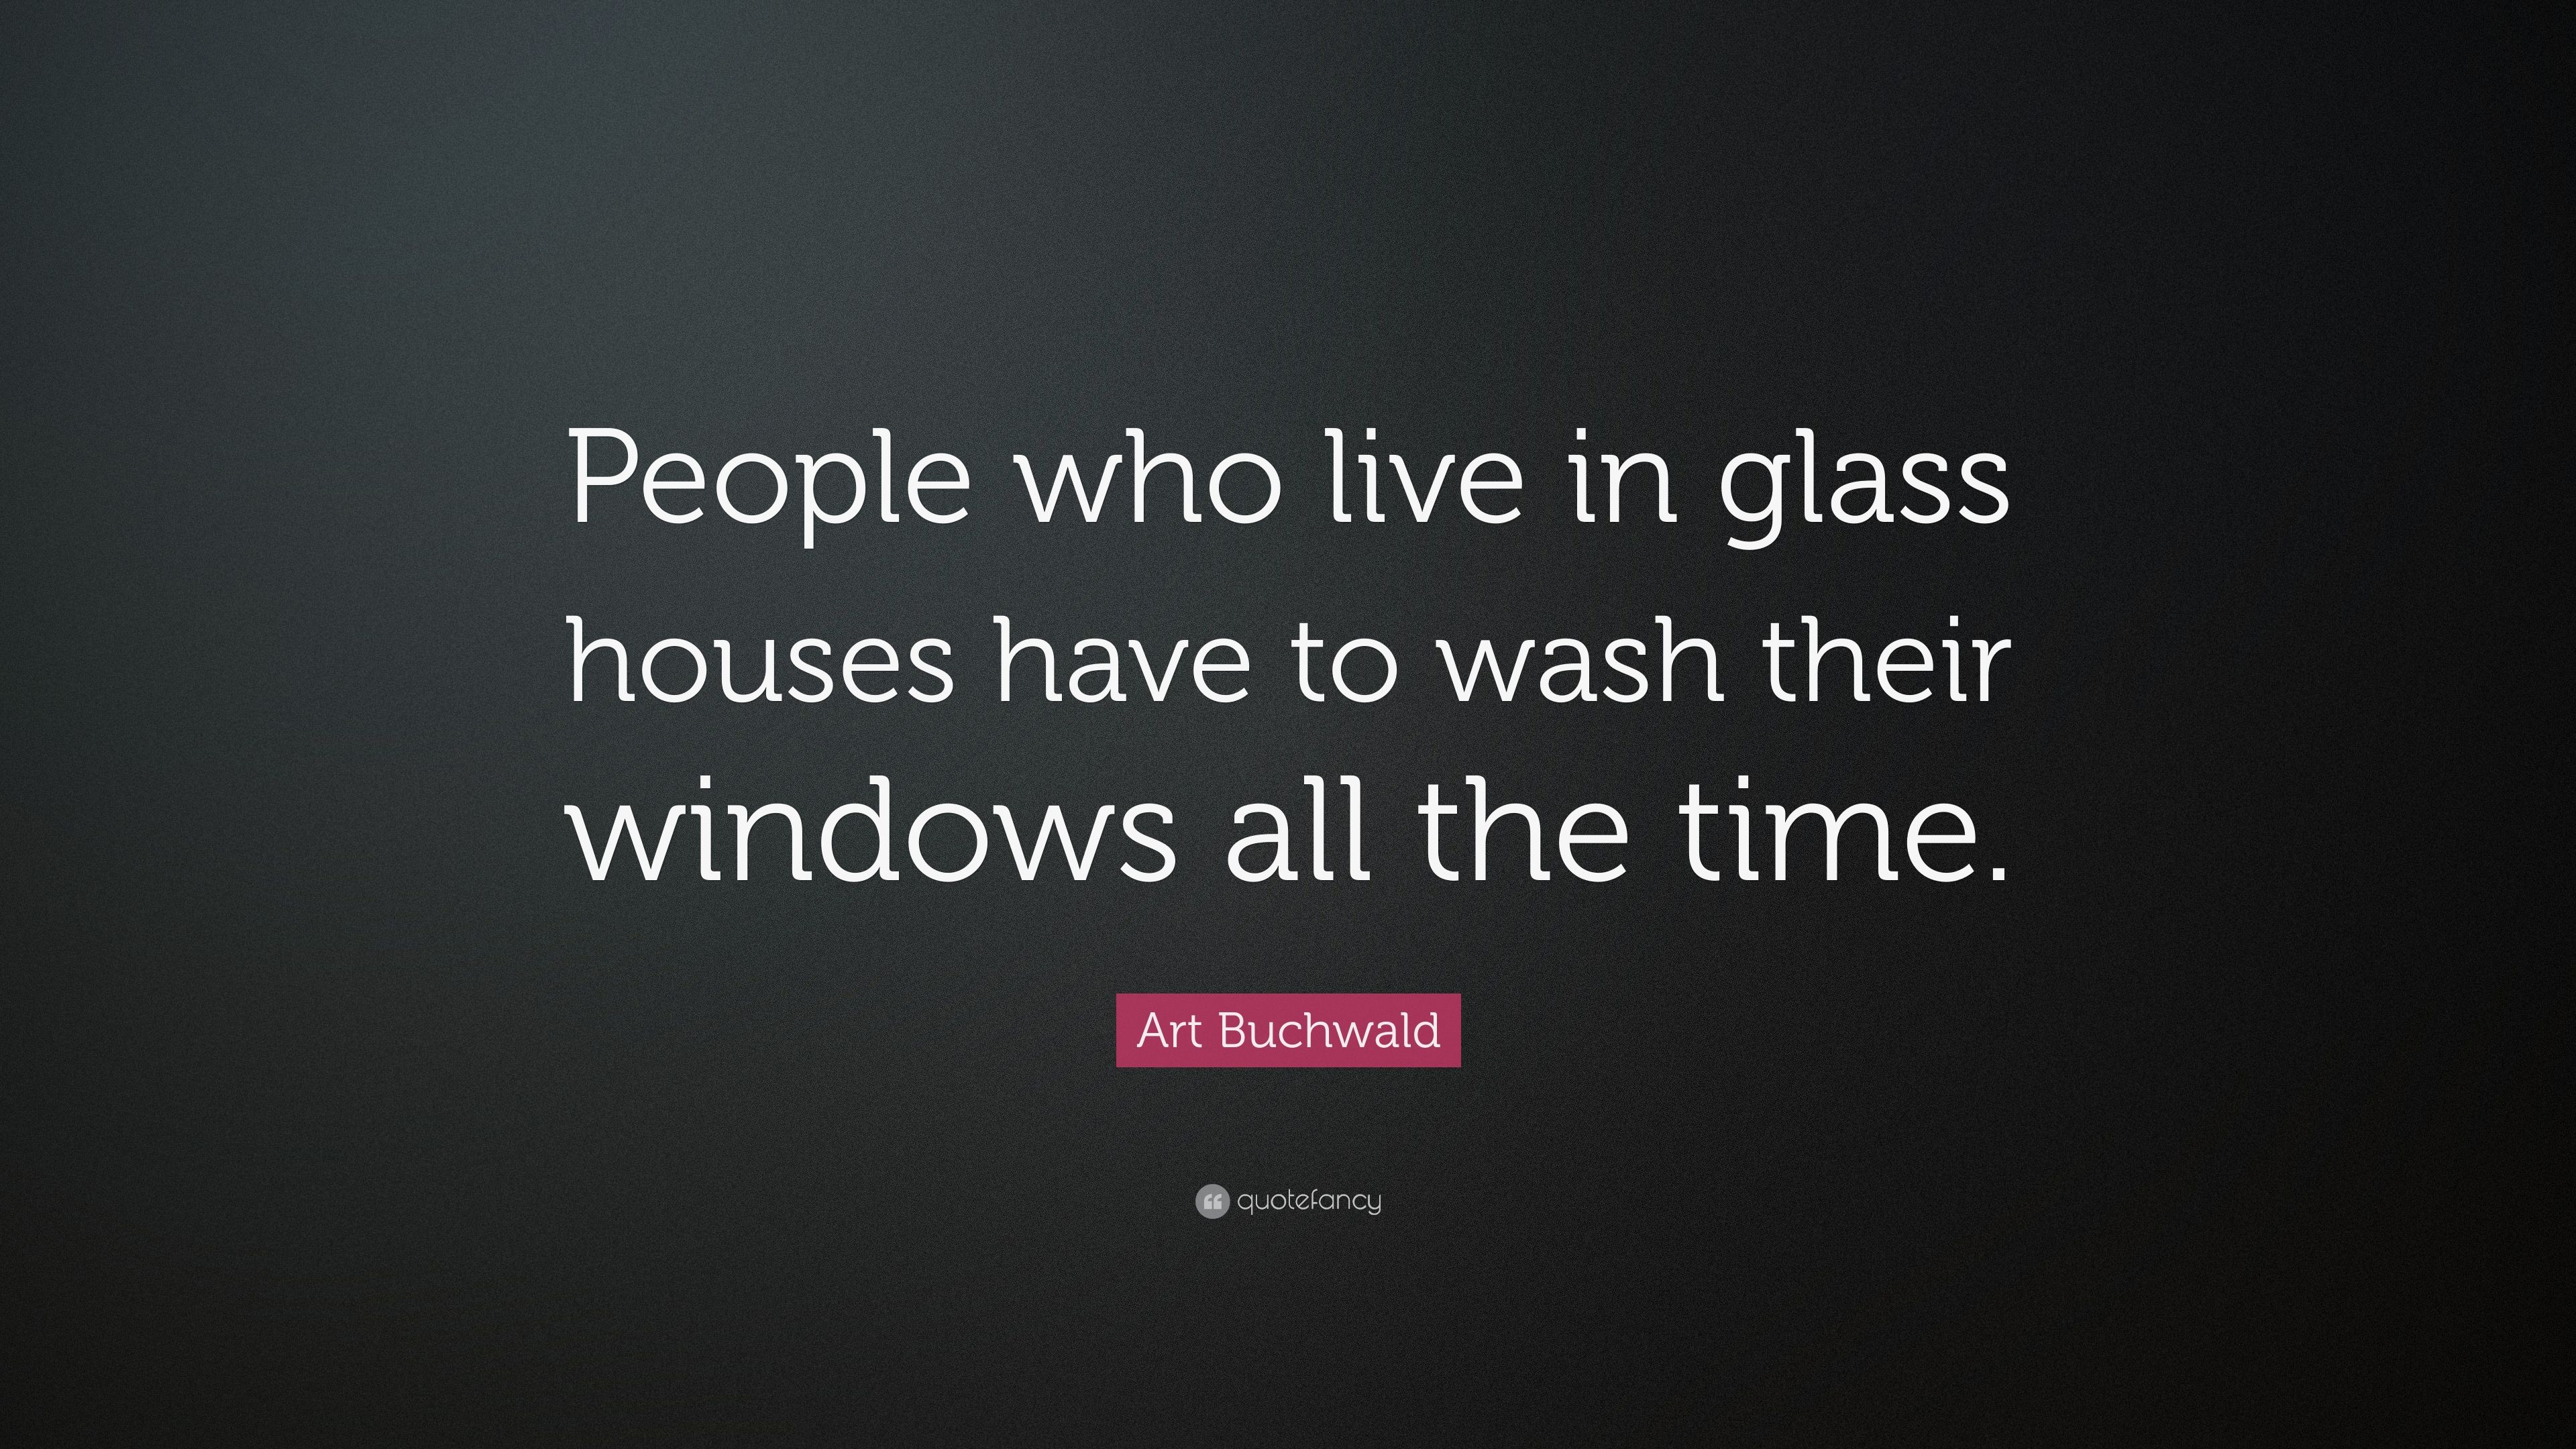 Fullsize Of People Who Live In Glass Houses